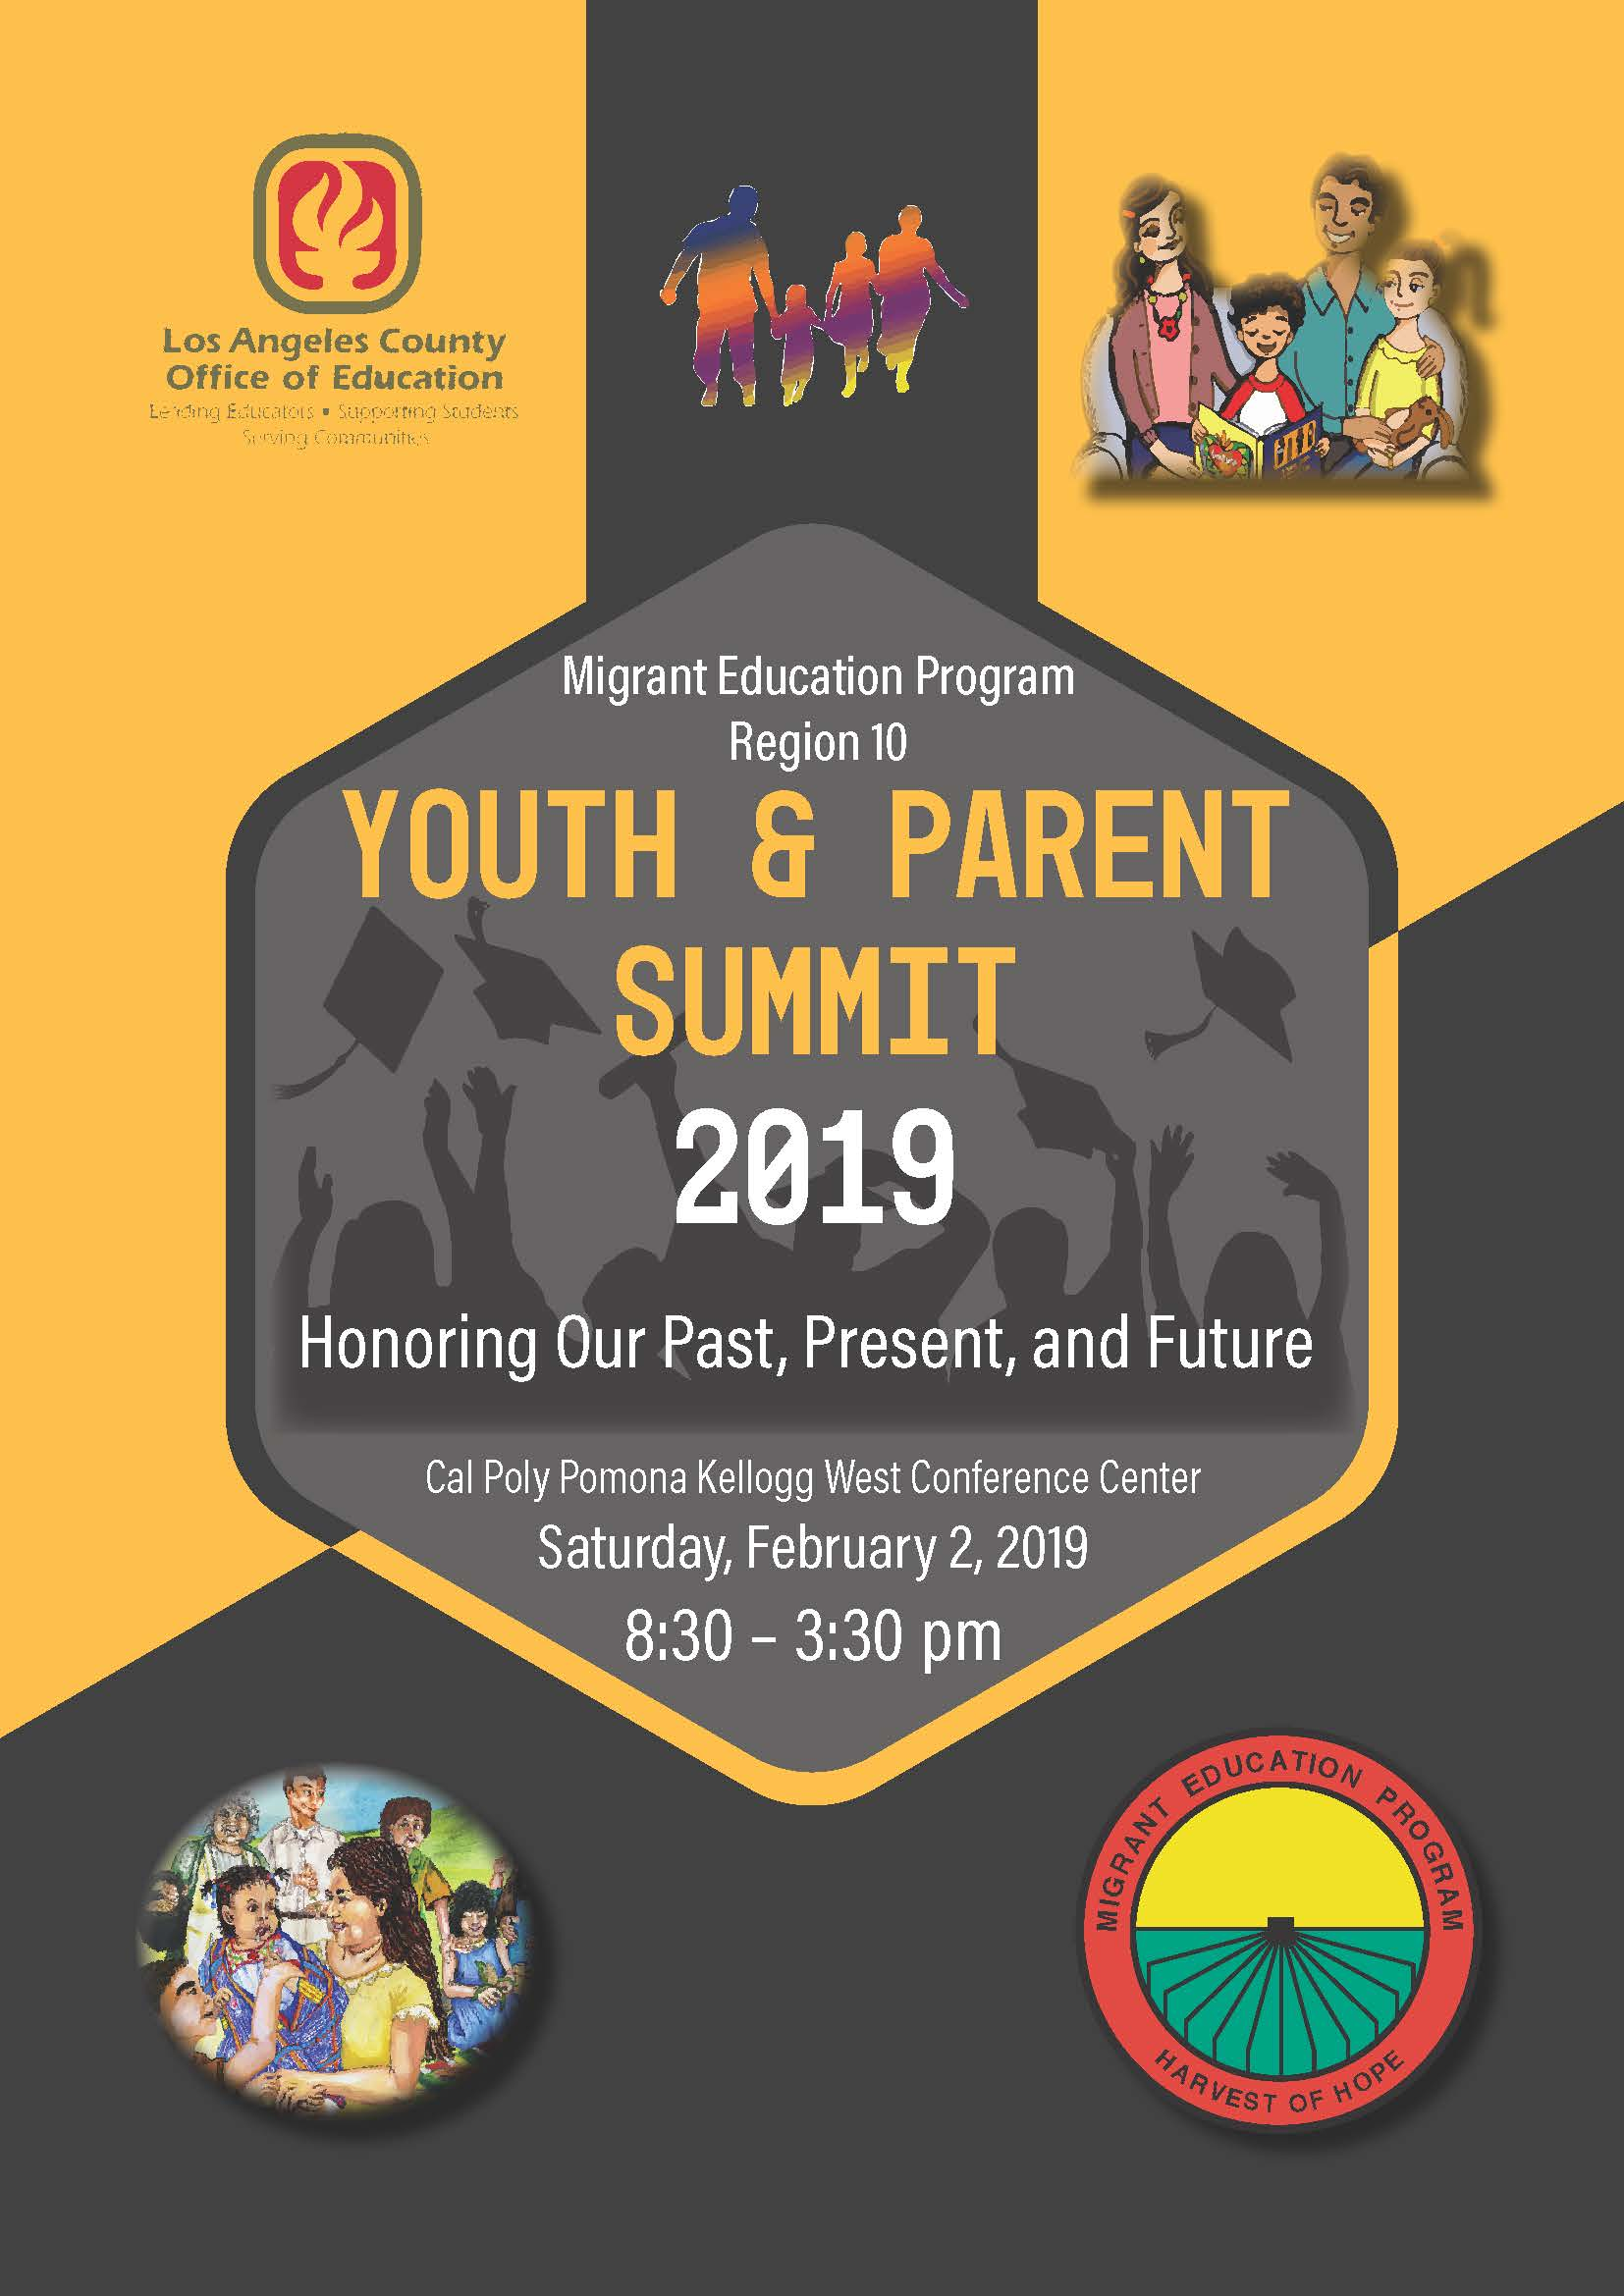 Youth & Parent Summit 2019